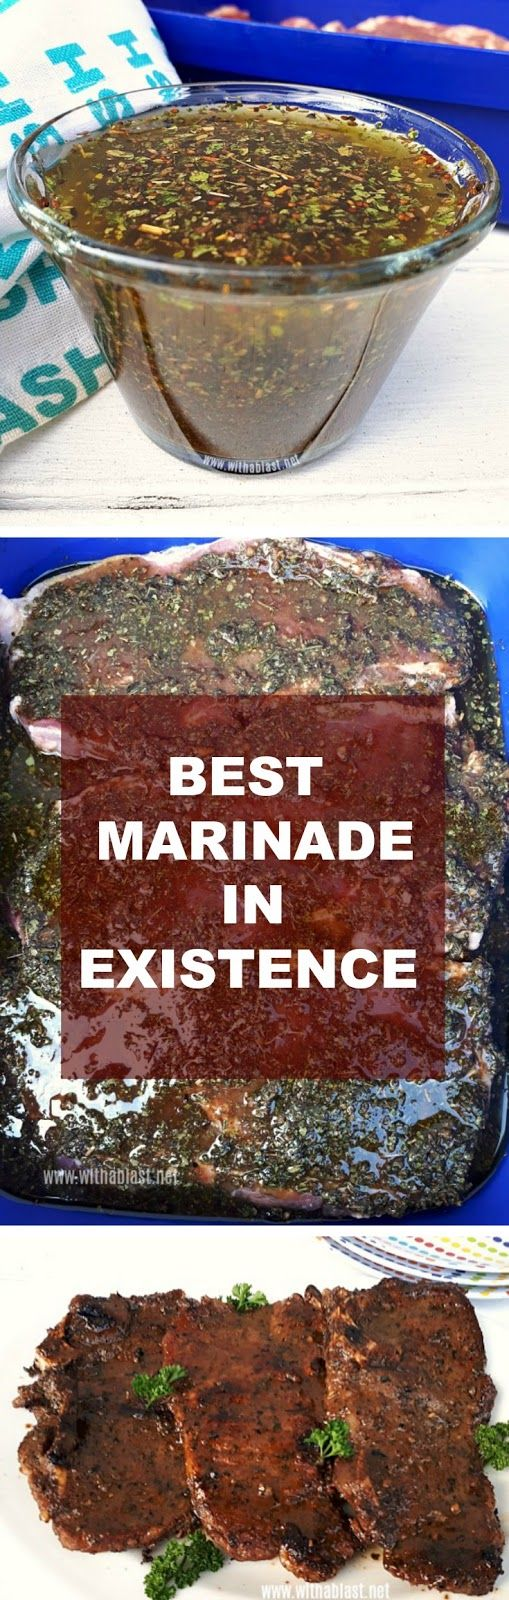 You have to try this Marinade ! It really is the Best Marinade in Existence ! #Marinade #BestMarinade